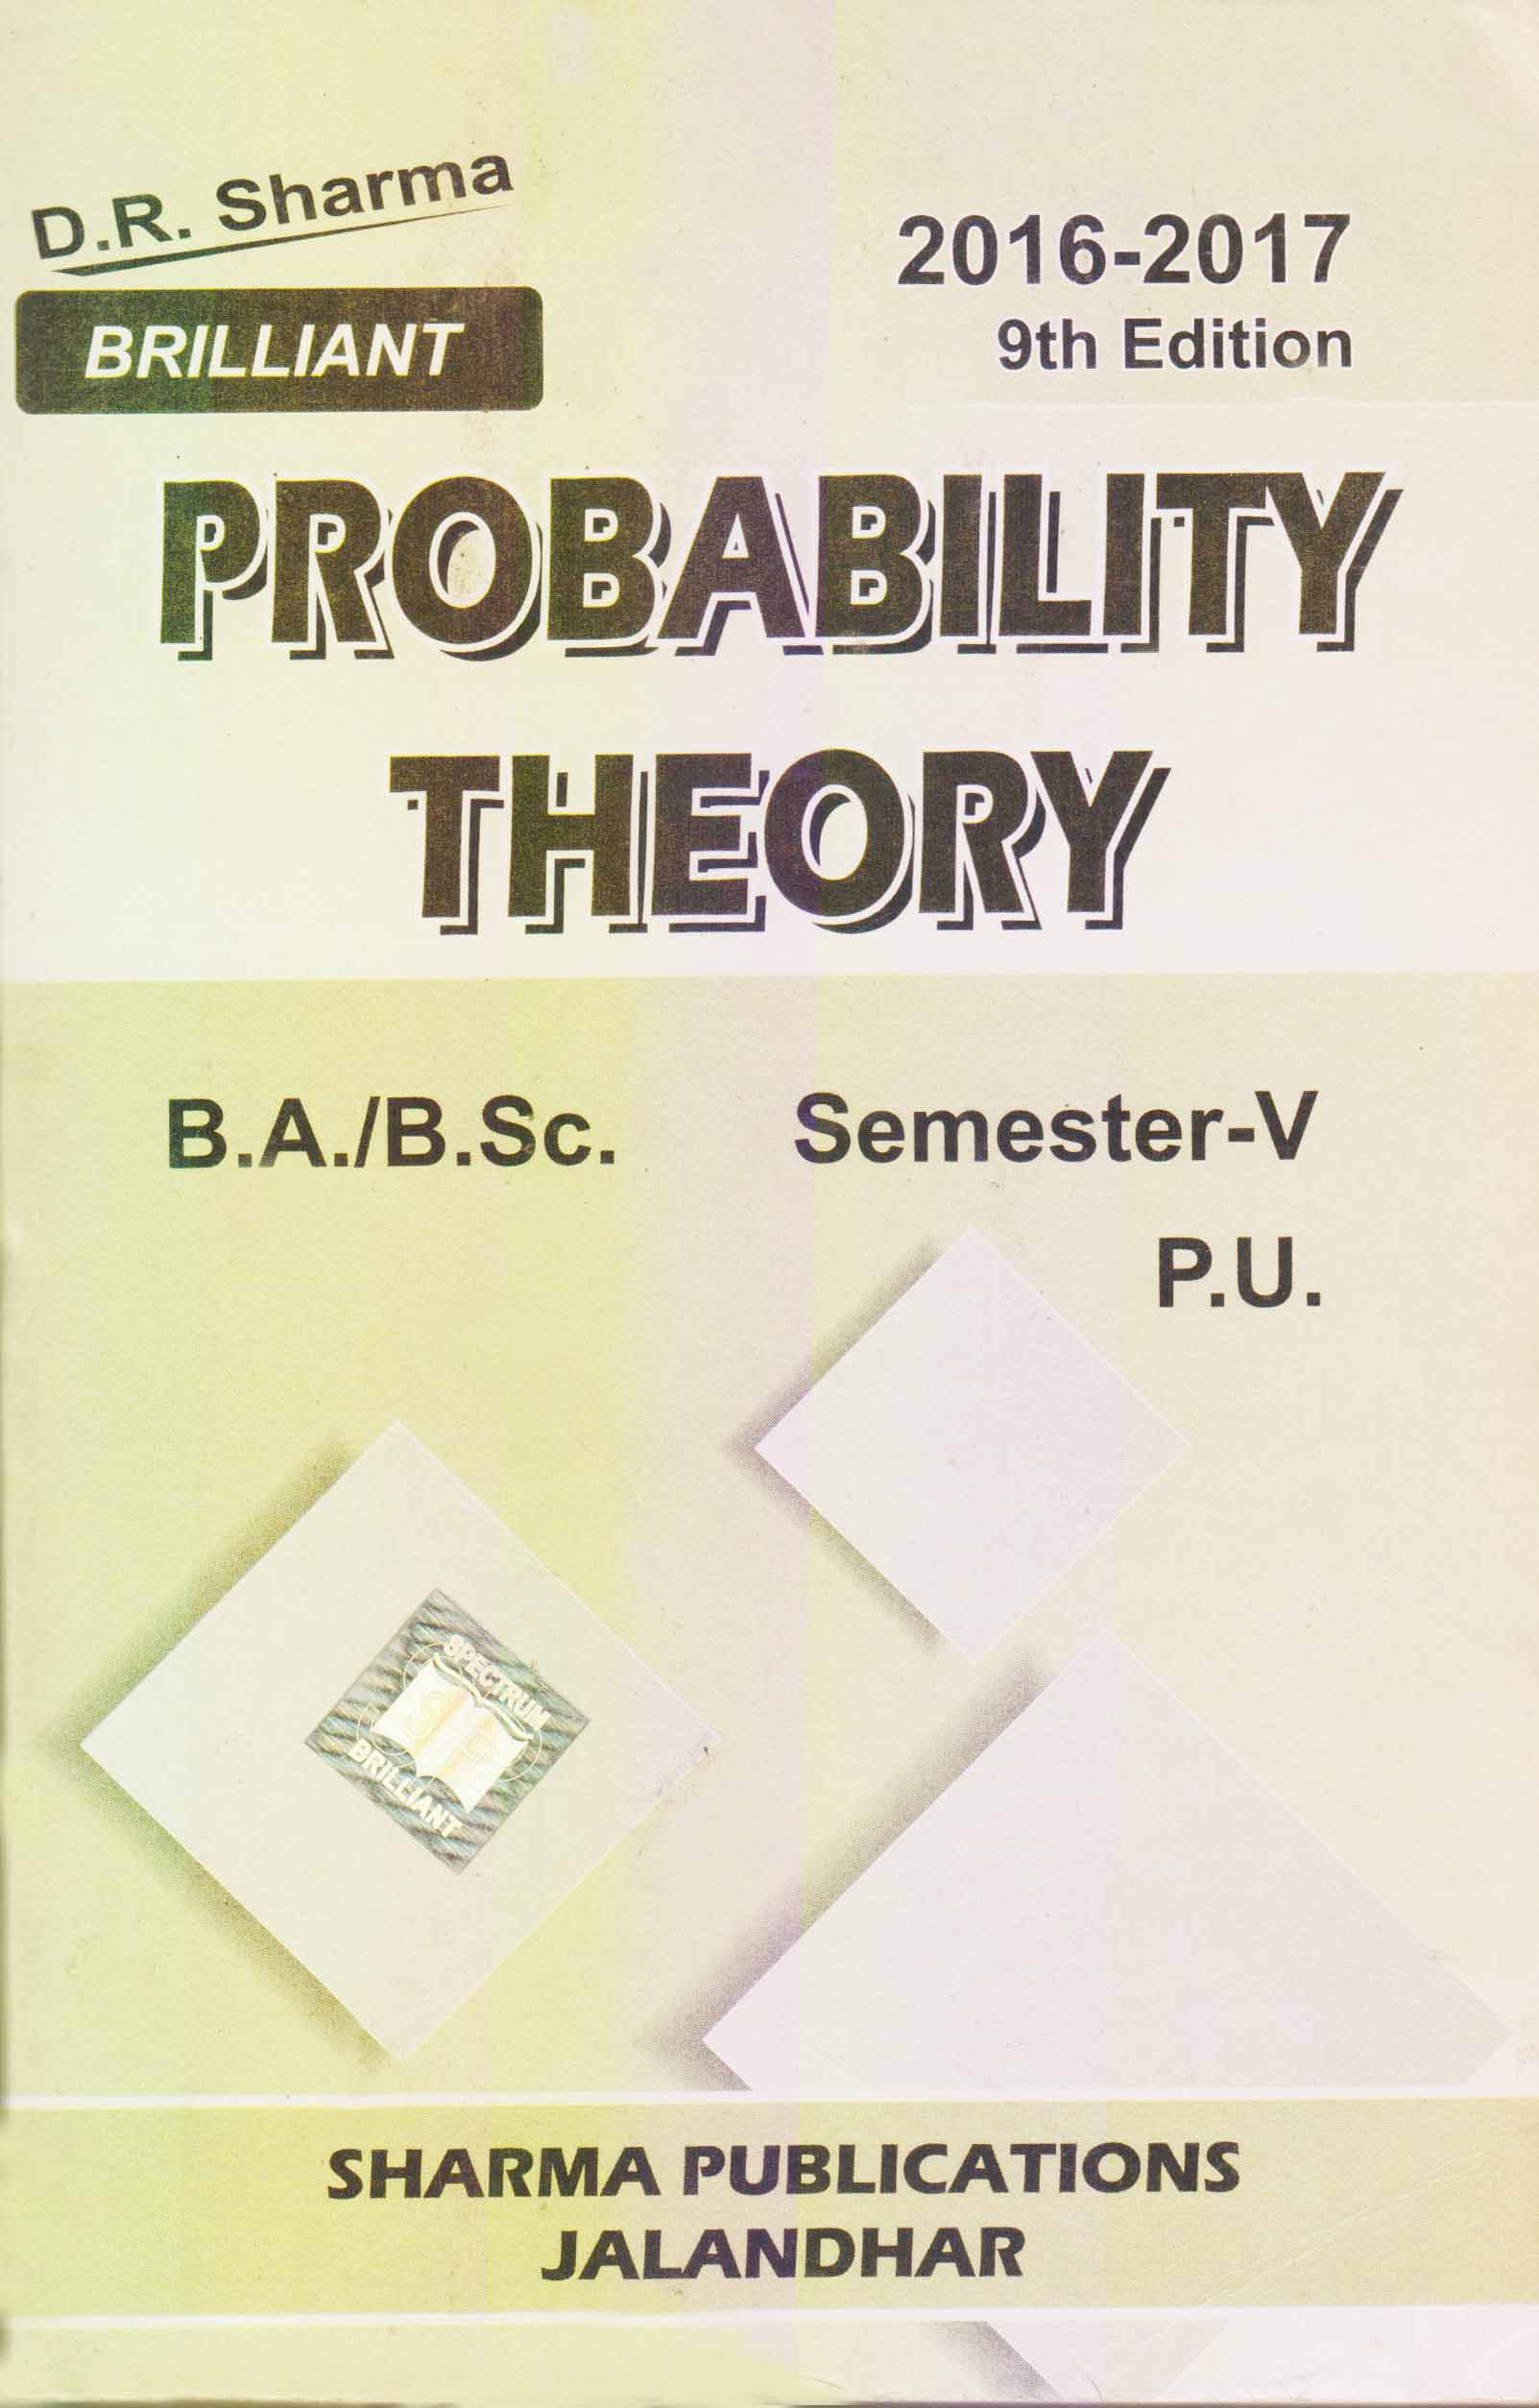 Probability Theory for B.A. / B.Sc. Sem. 5 (P.U.) by D.R. Sharma